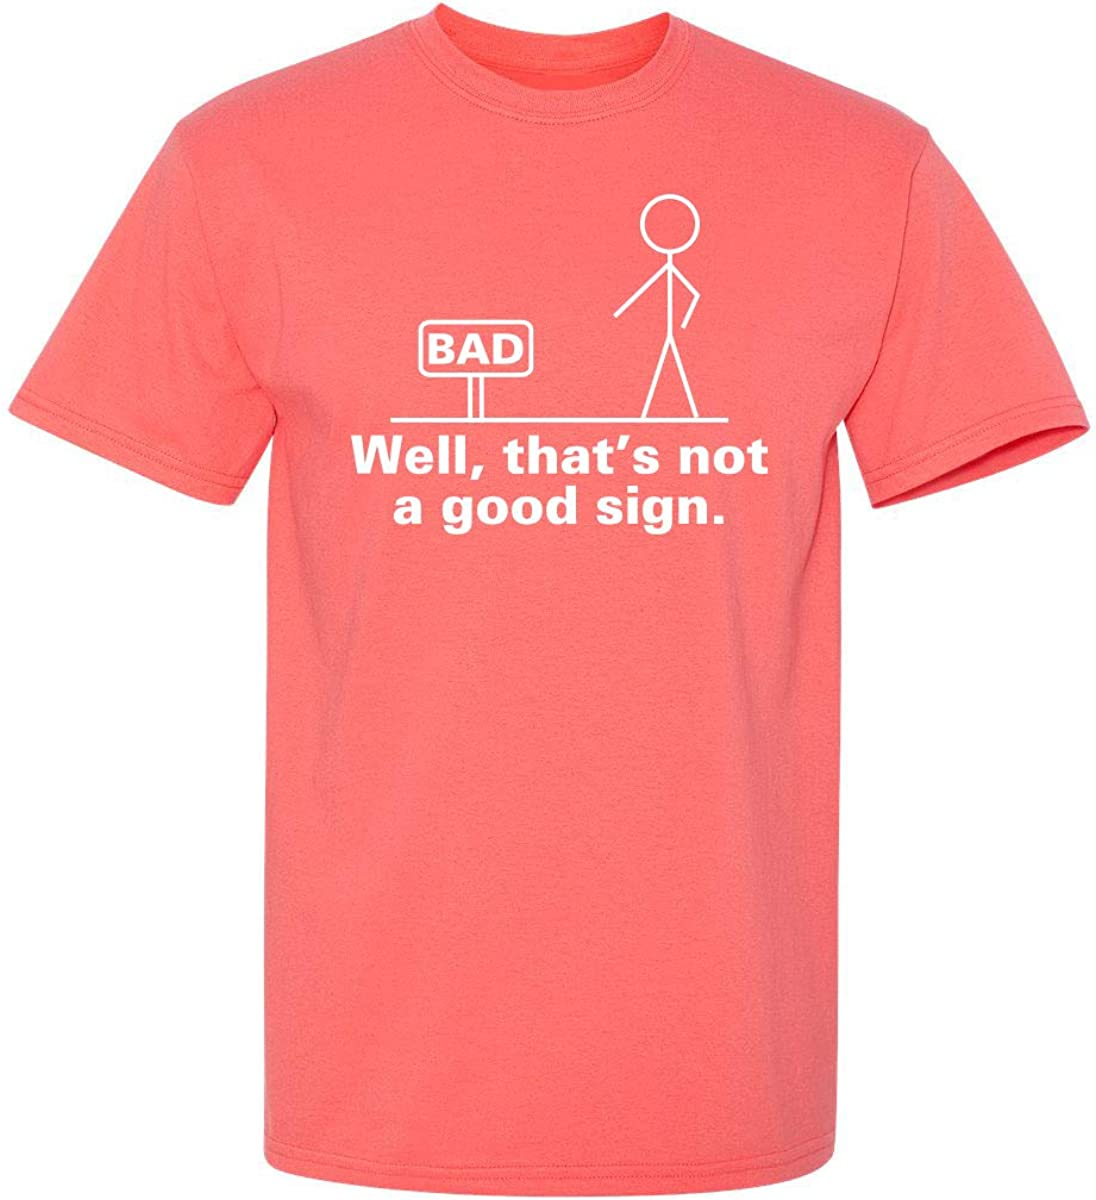 Well Thats Not A Good Sign Adult Humor Graphic Novelty Sarcastic Funny T Shirt